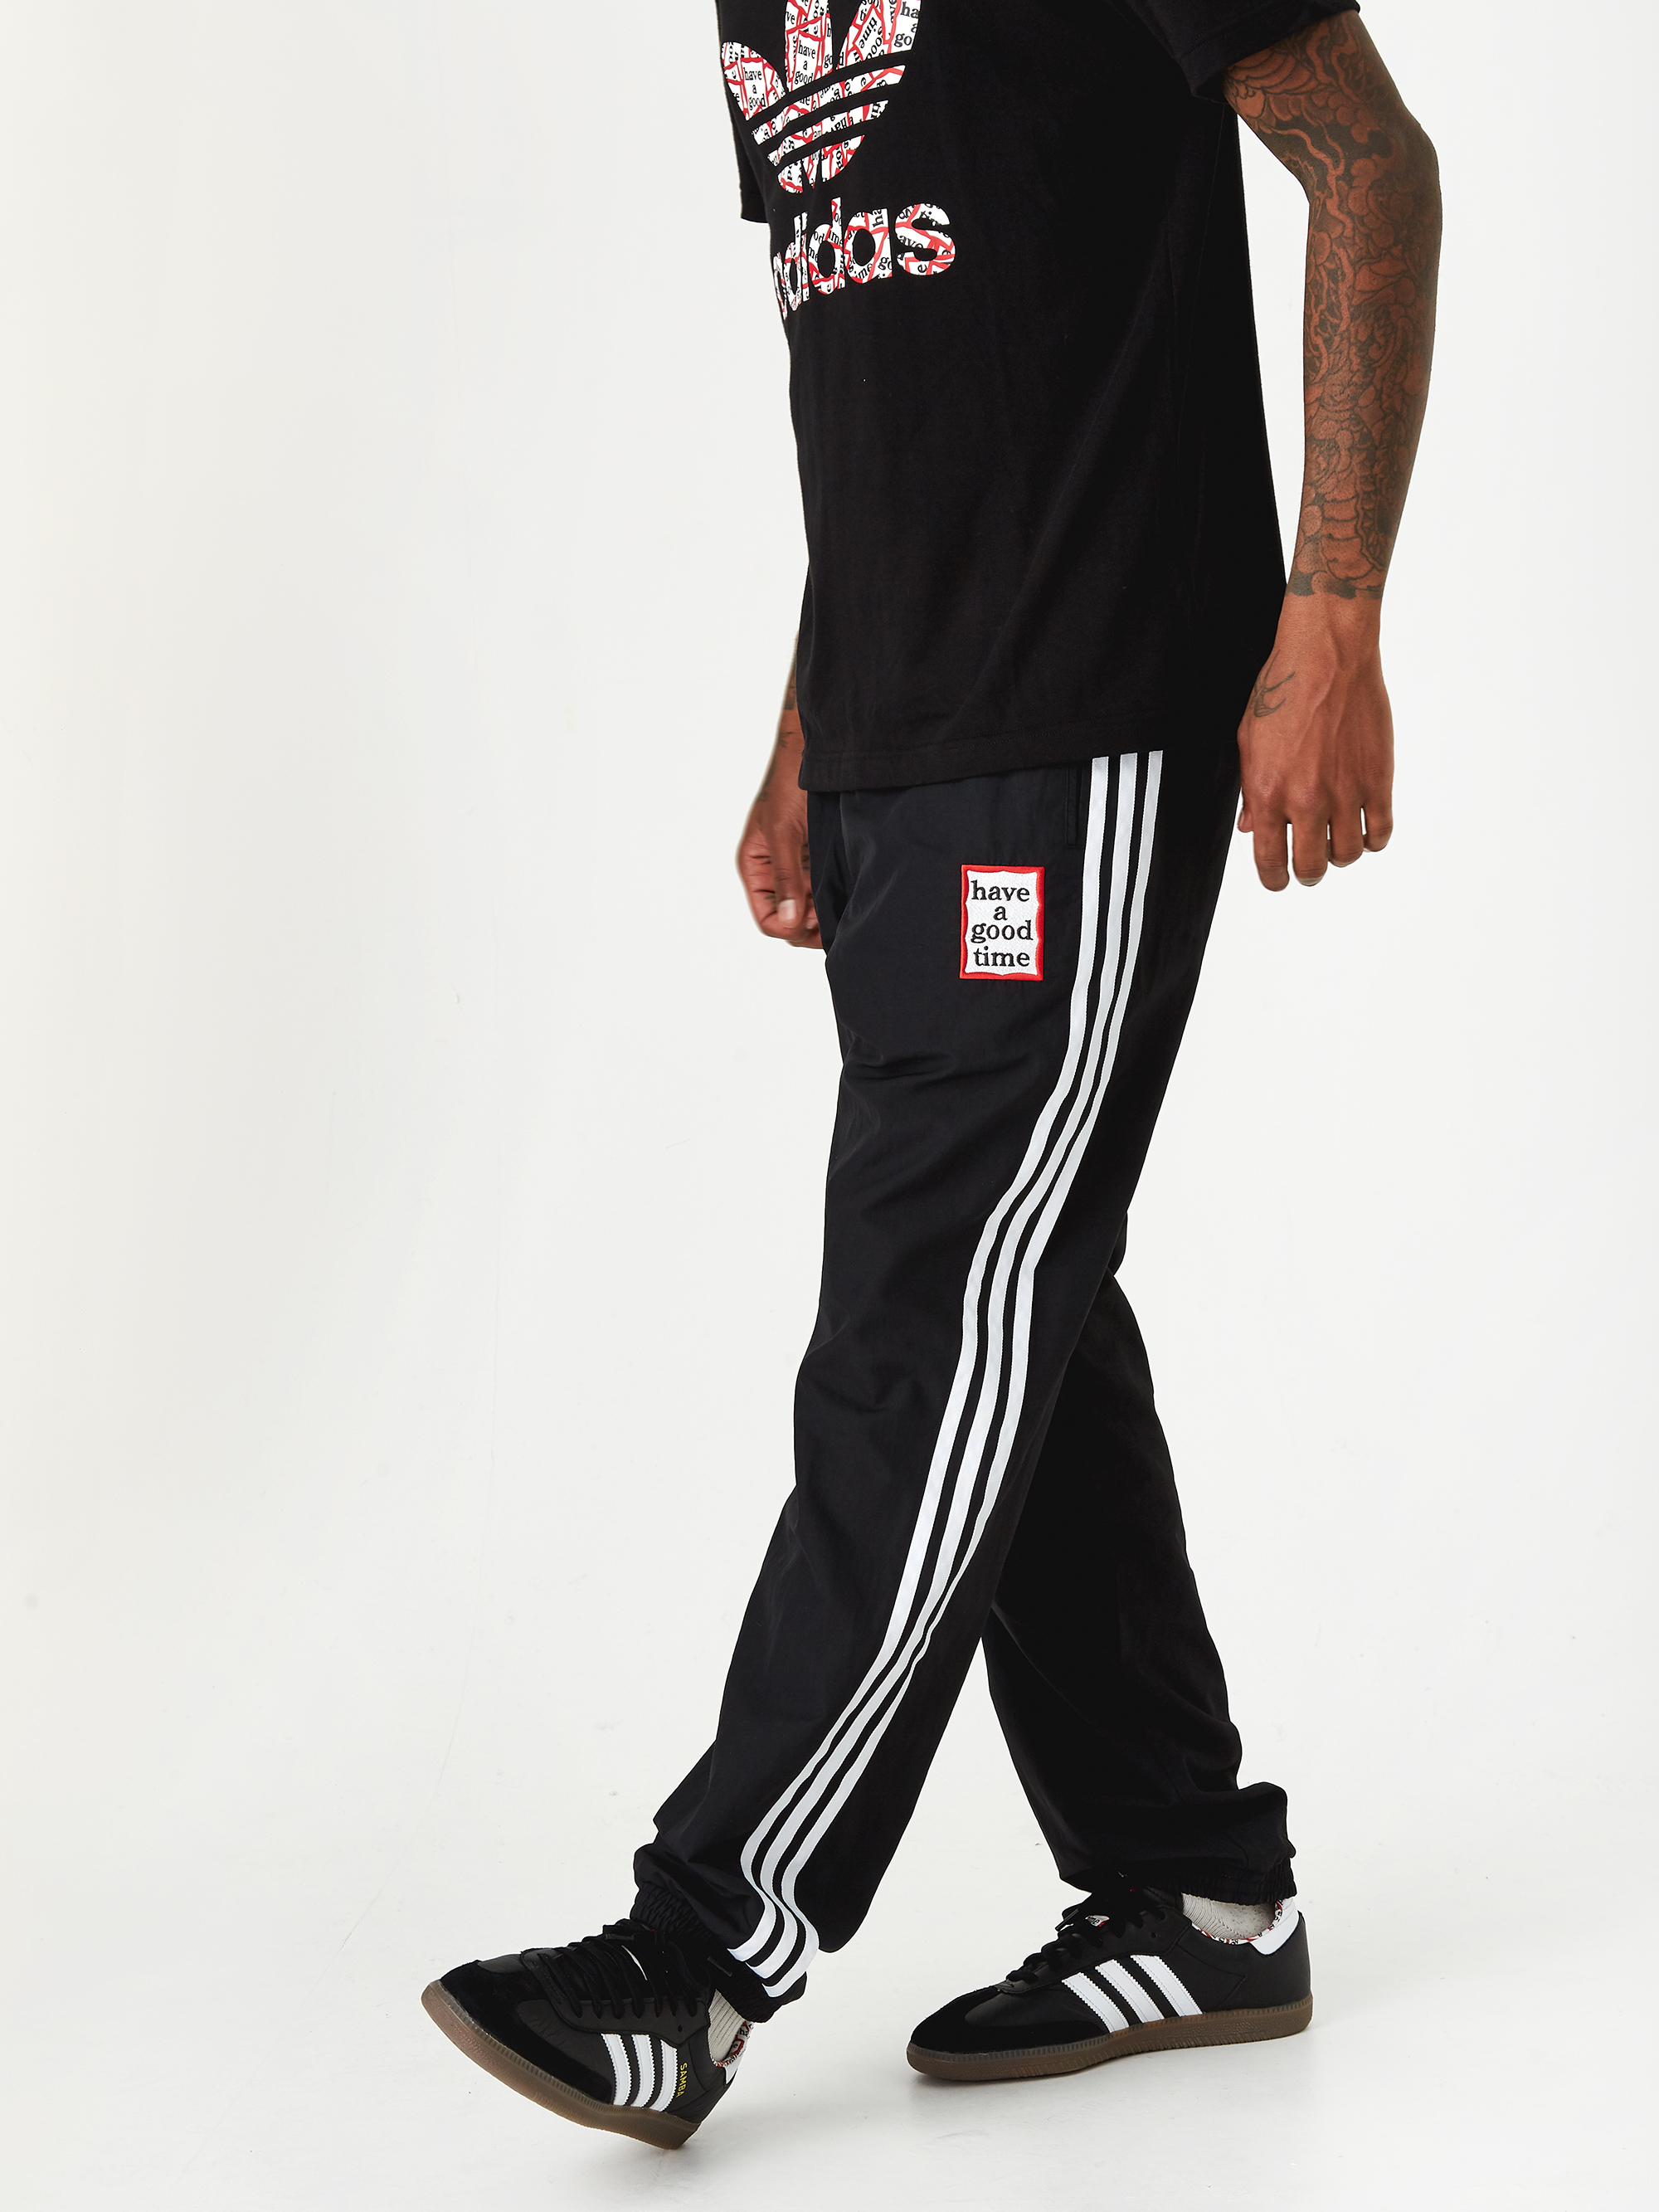 77f7c15cbae Adidas x Have A Good Time Reversible Track Pant - Multi